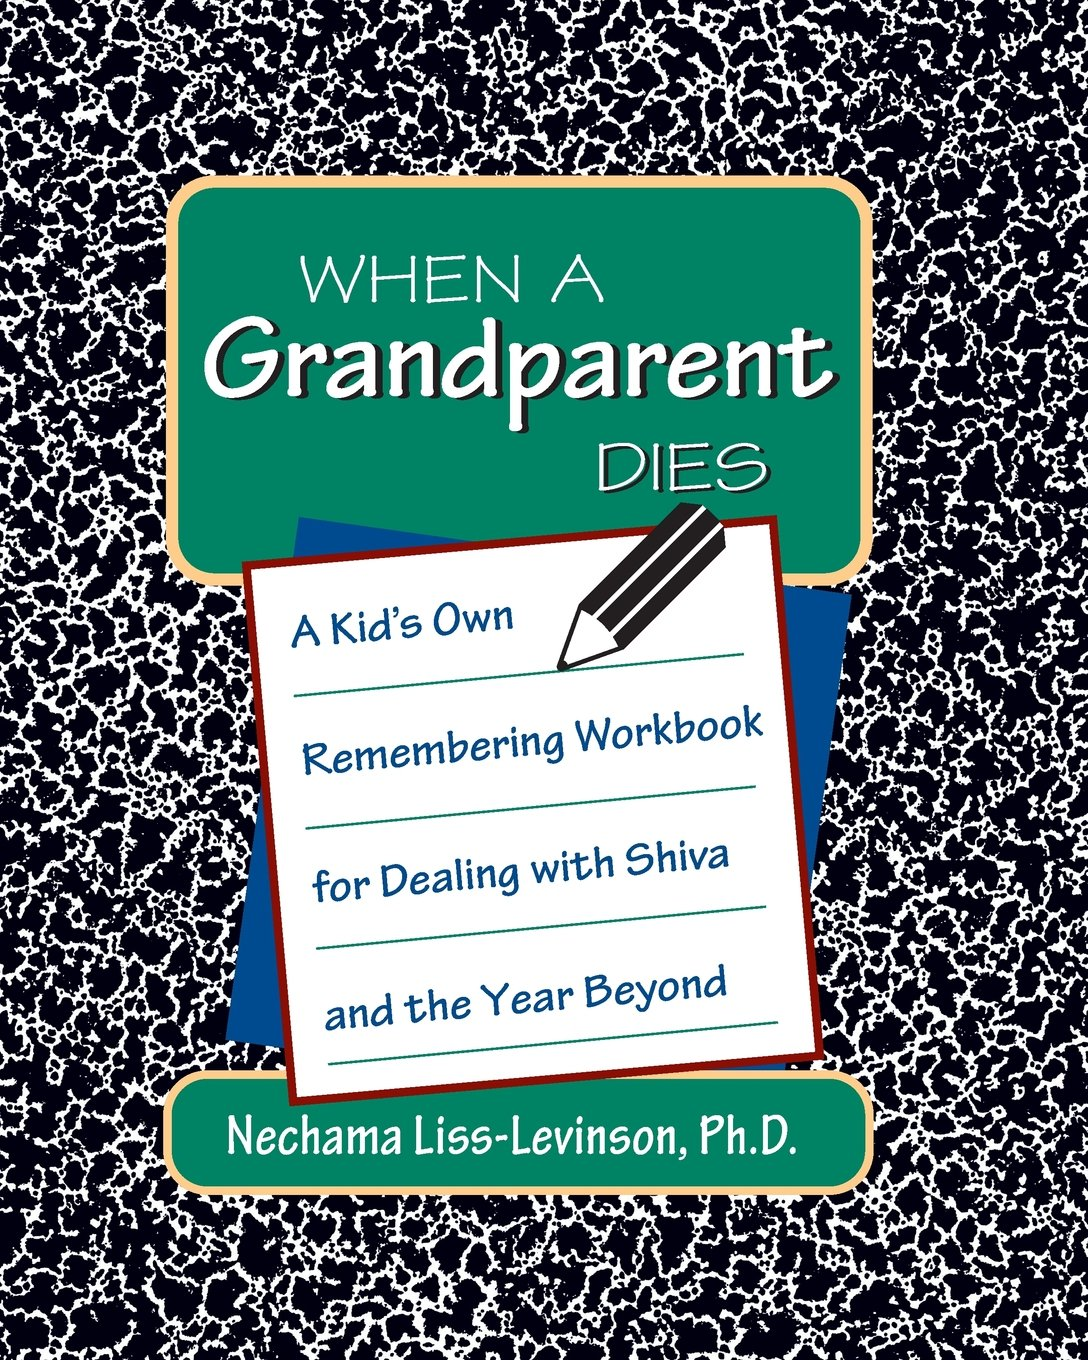 When a Grandparent Dies: A Kid's Own Remembering Workbook for Dealing with Shiva and the Year Beyond